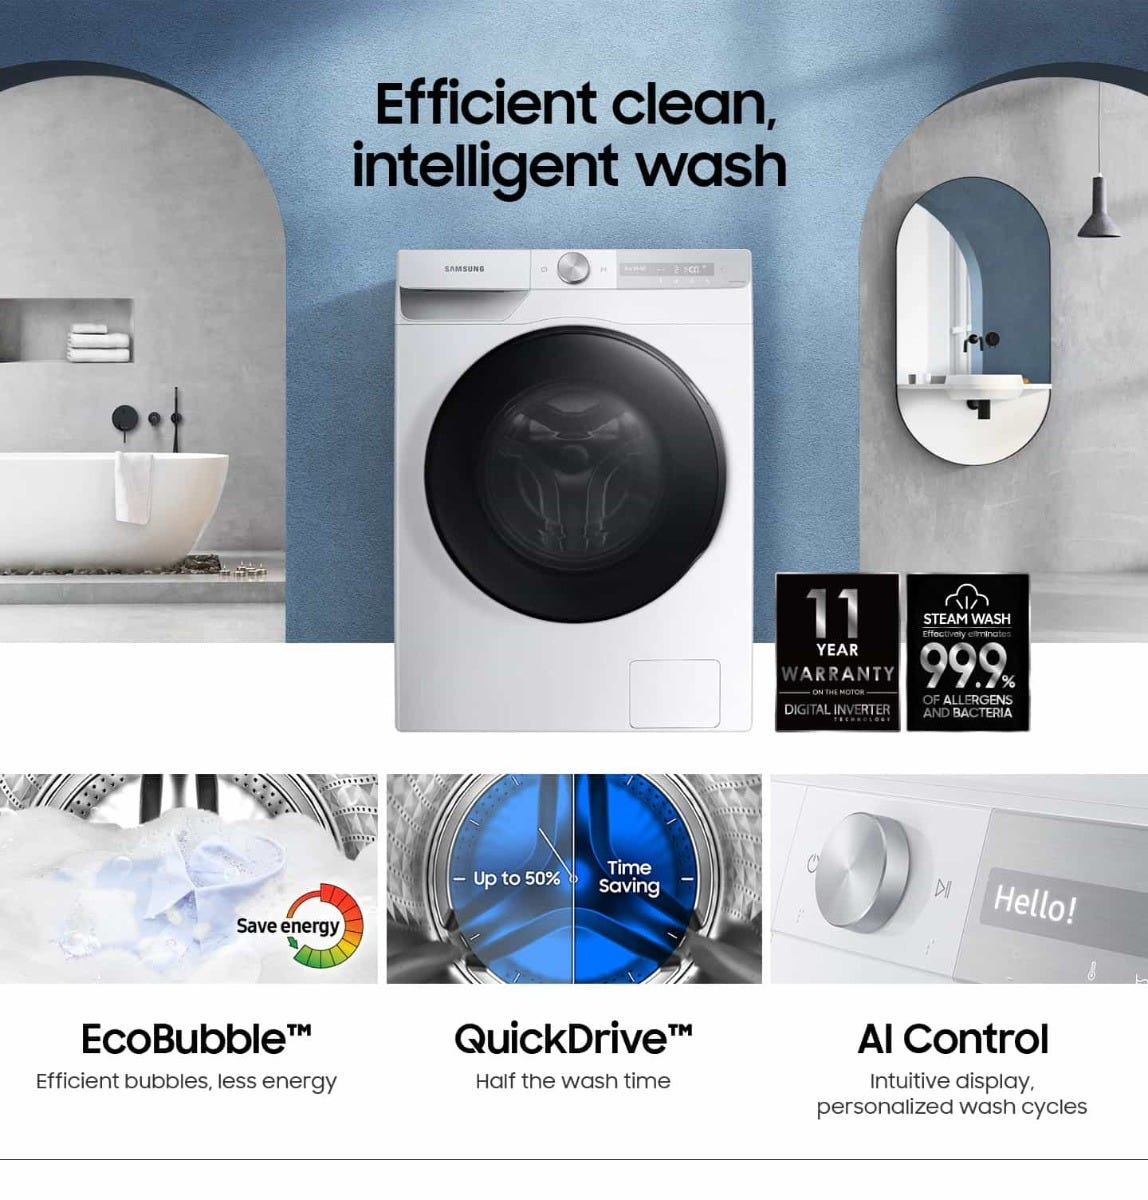 Samsung Efficient Cleaning